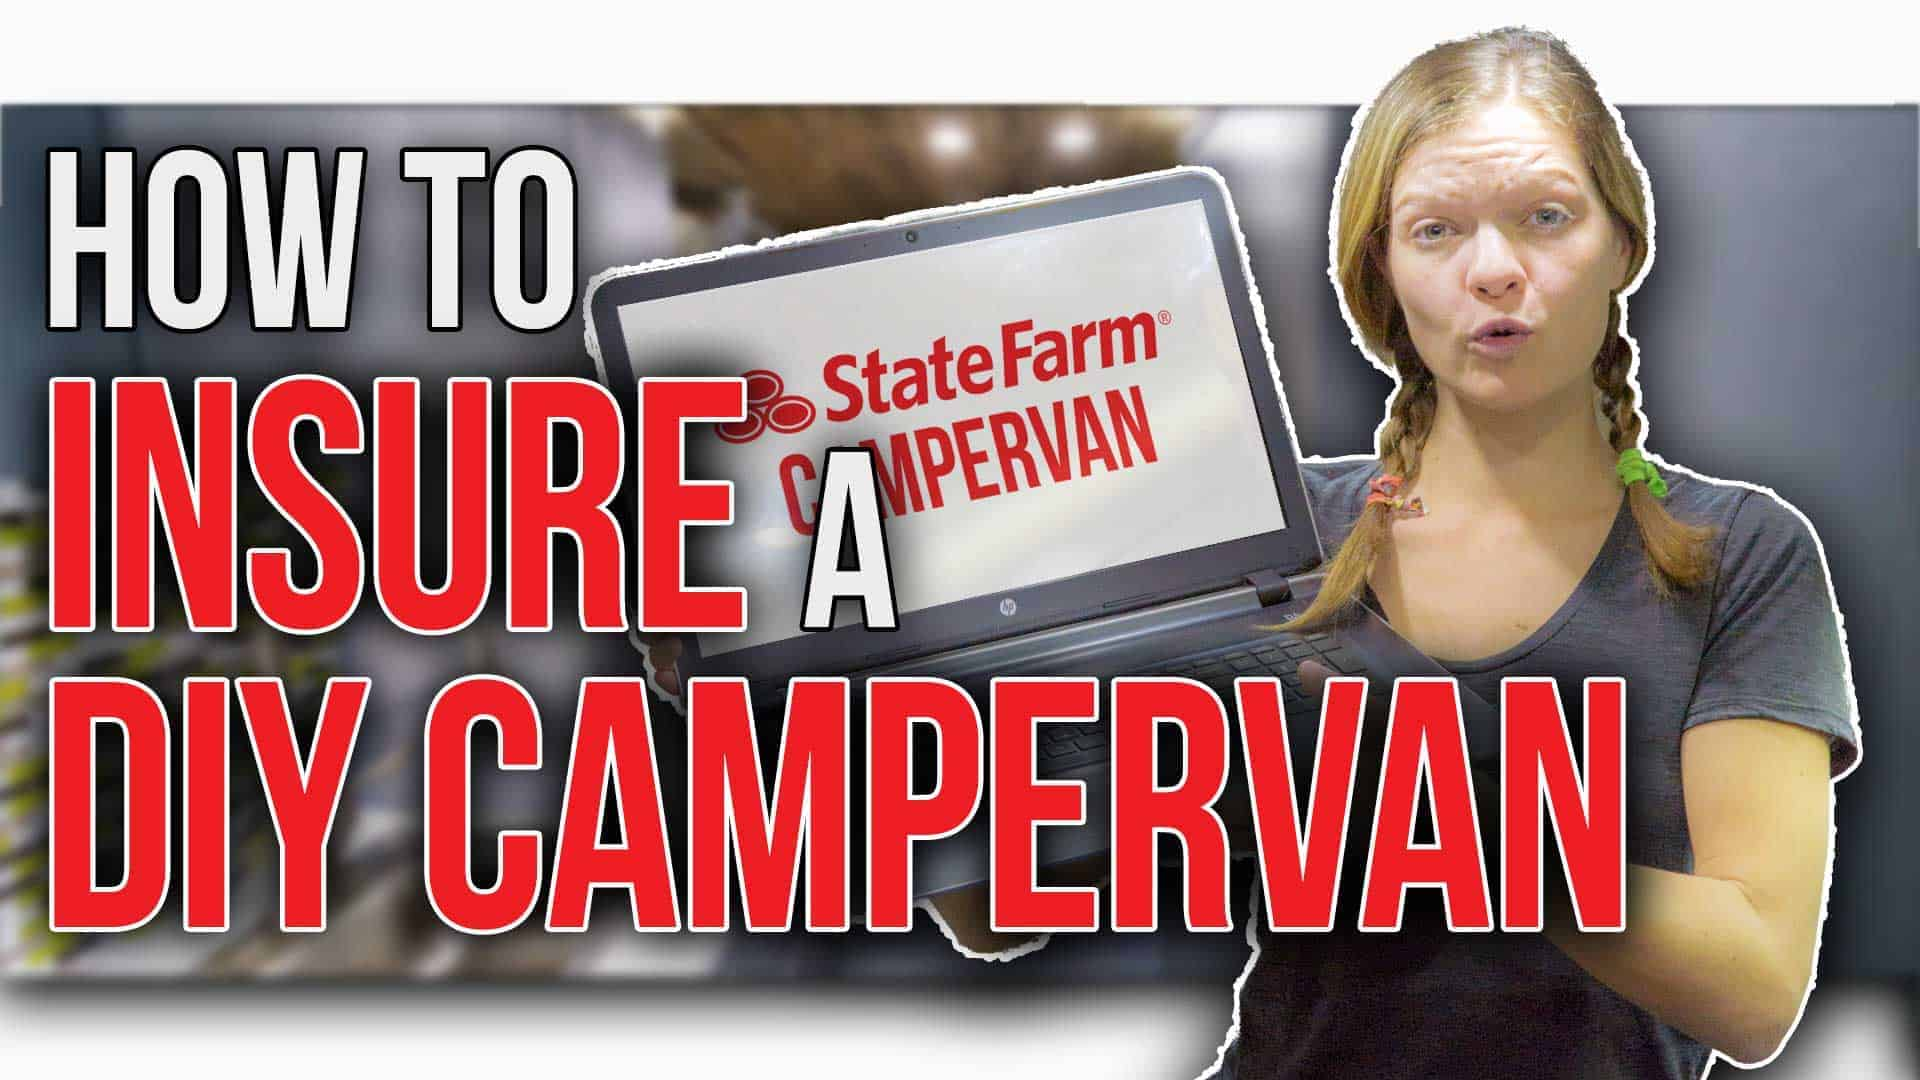 How to insure a DIY campervan